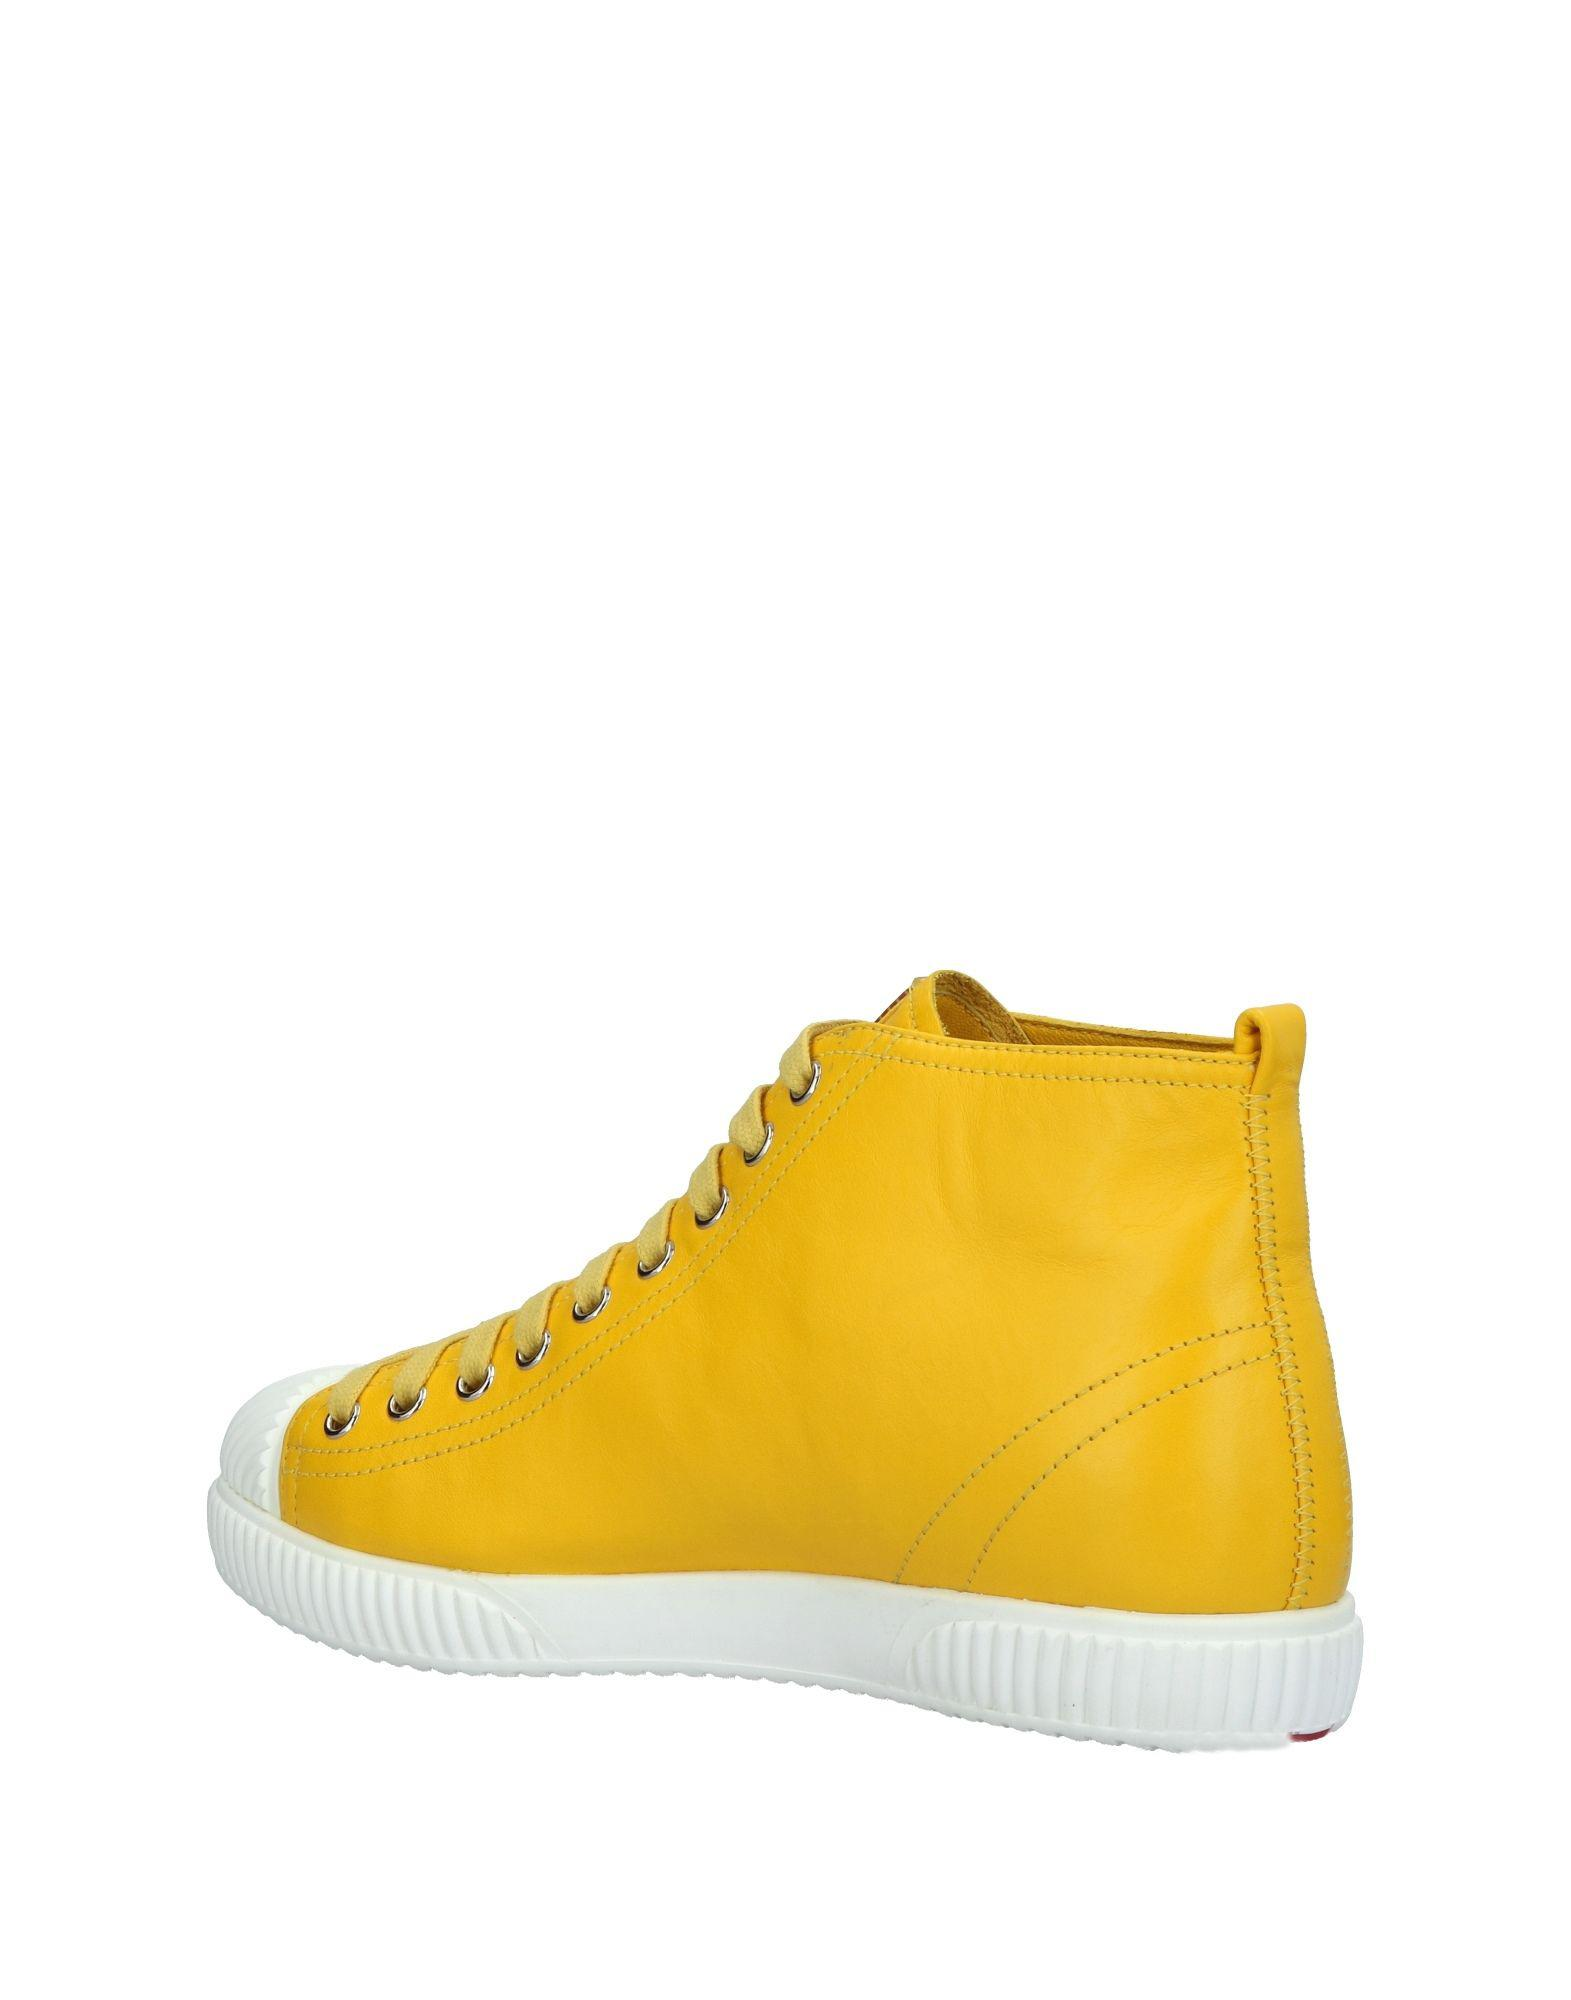 Prada Linea Rossa Leather High-tops & Sneakers in Yellow